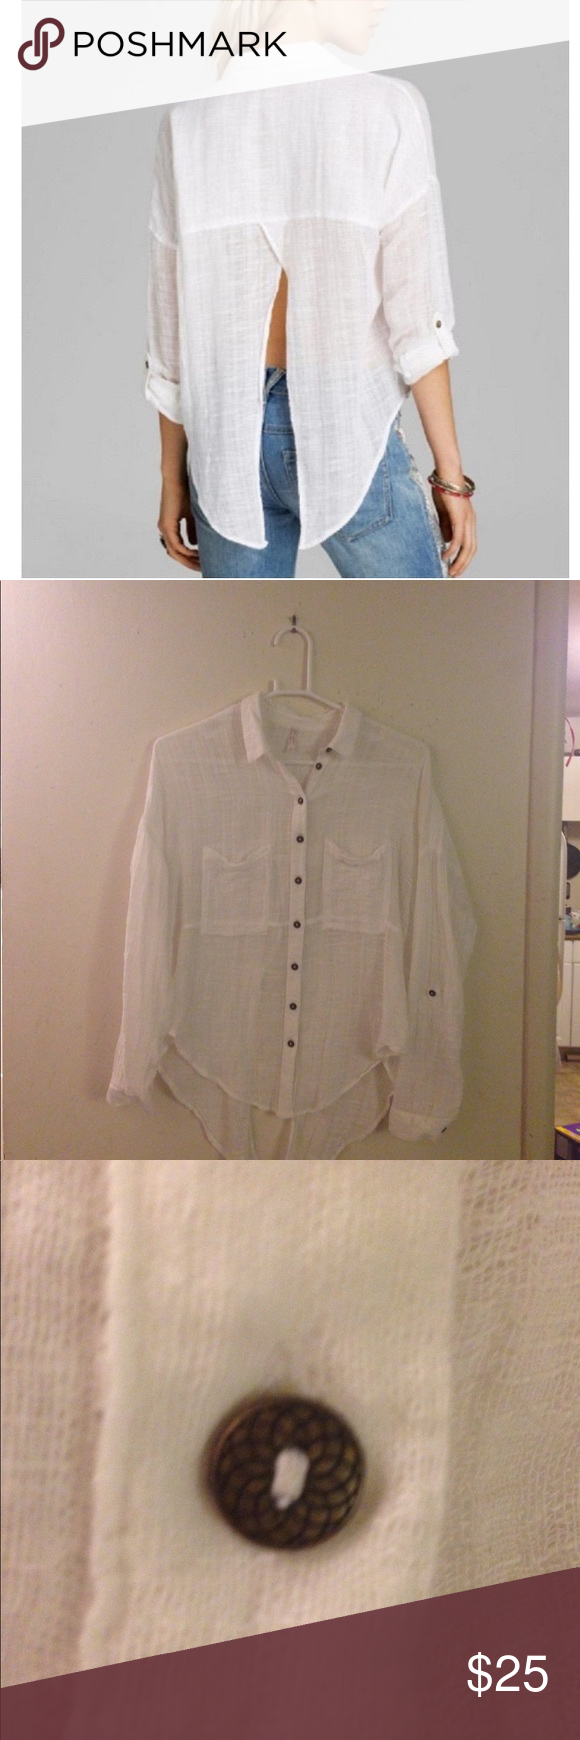 17f612048 Free People Split Back Button Down White Top Excellent condition. Free  People Shibori siren split